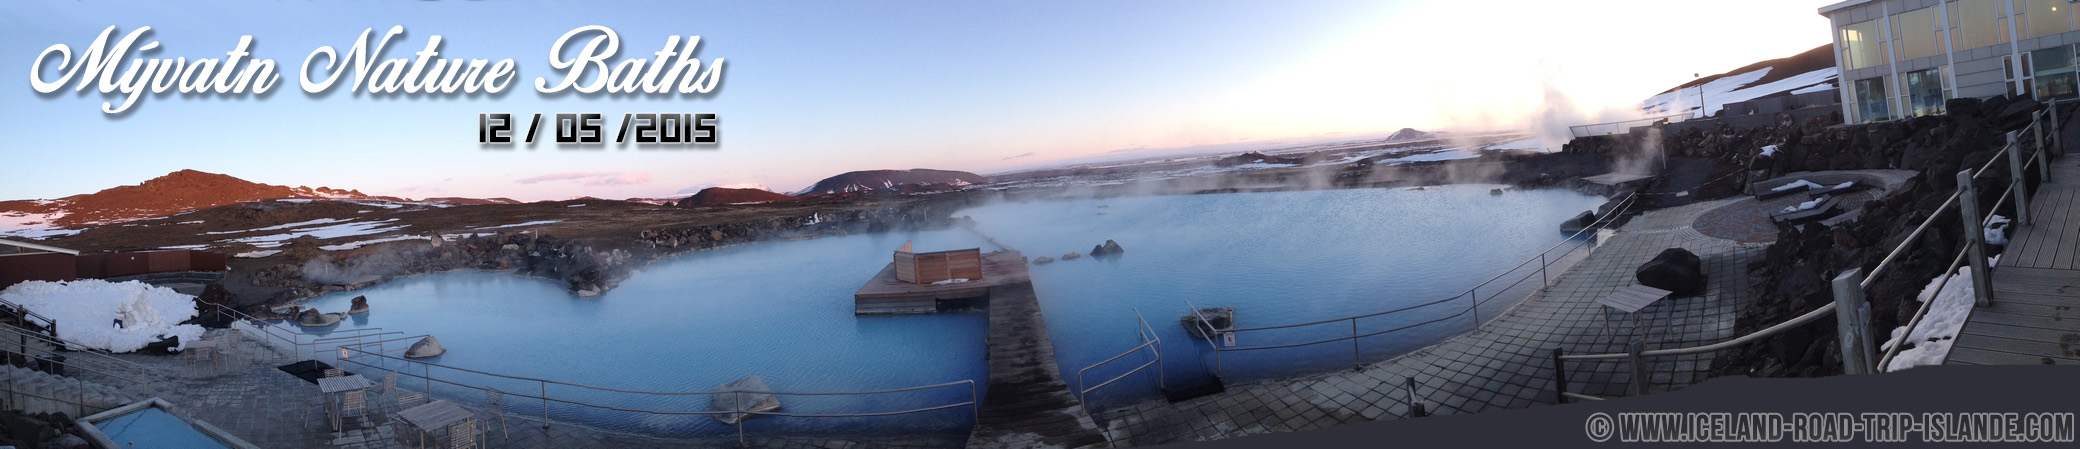 Panorama de Mývatn Nature Baths